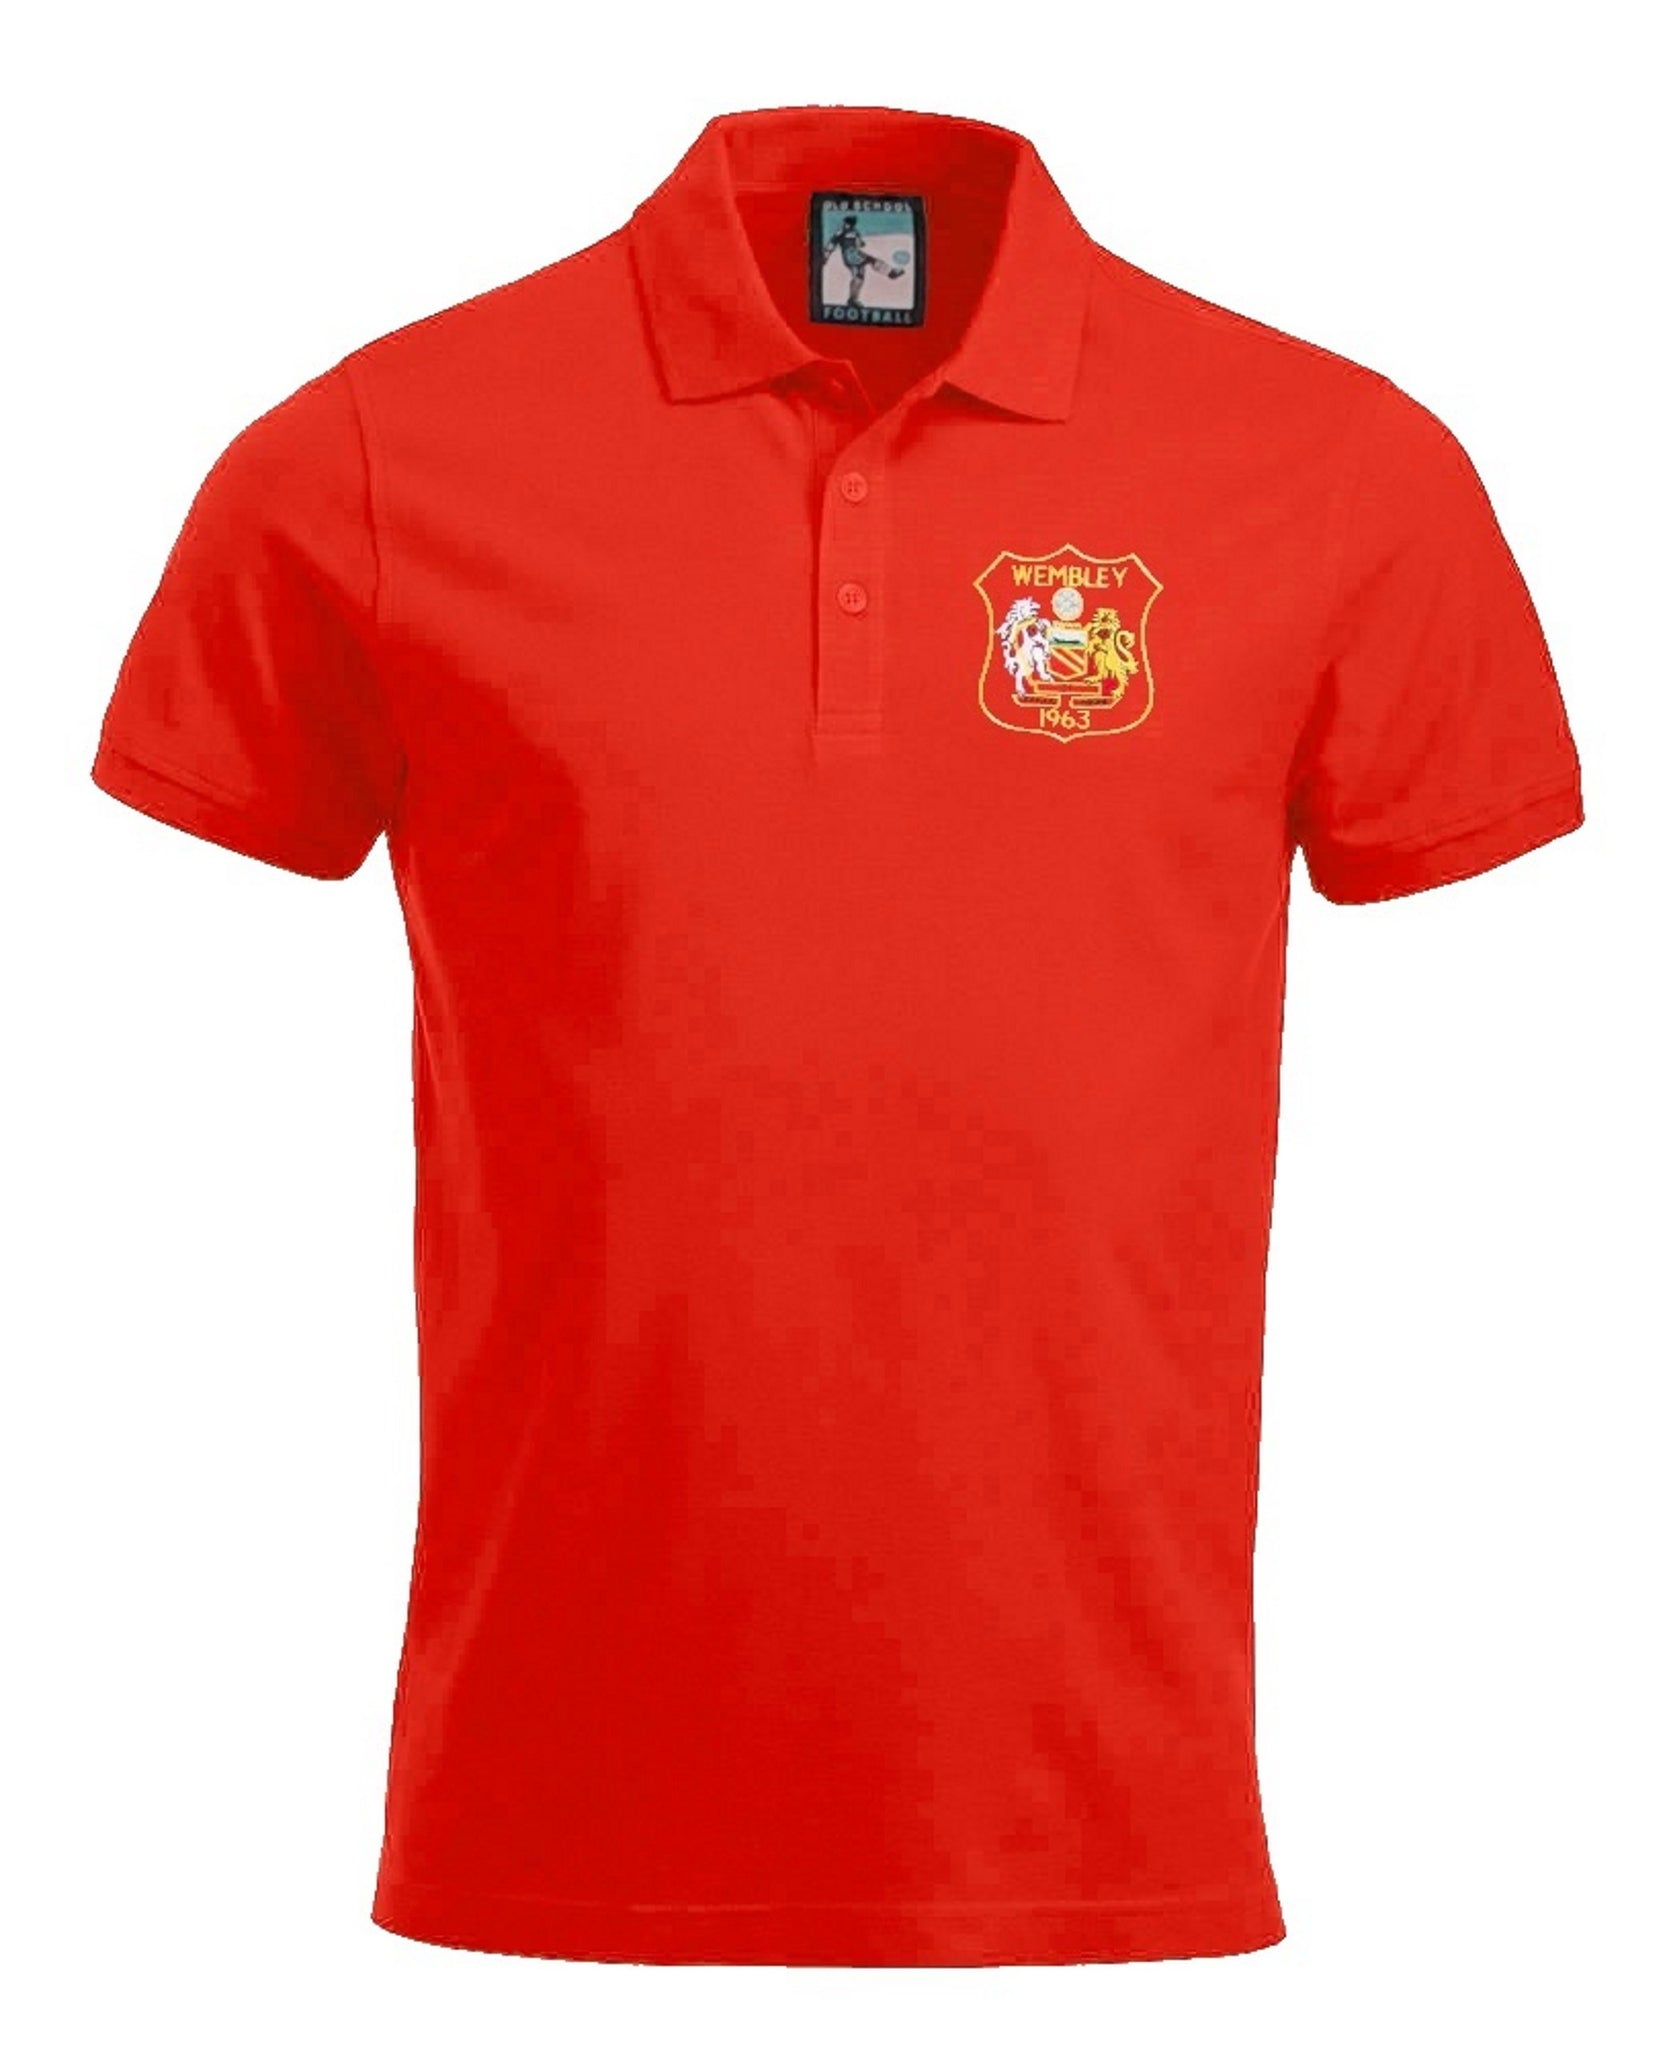 Manchester United 1963 Polo - Old School Football